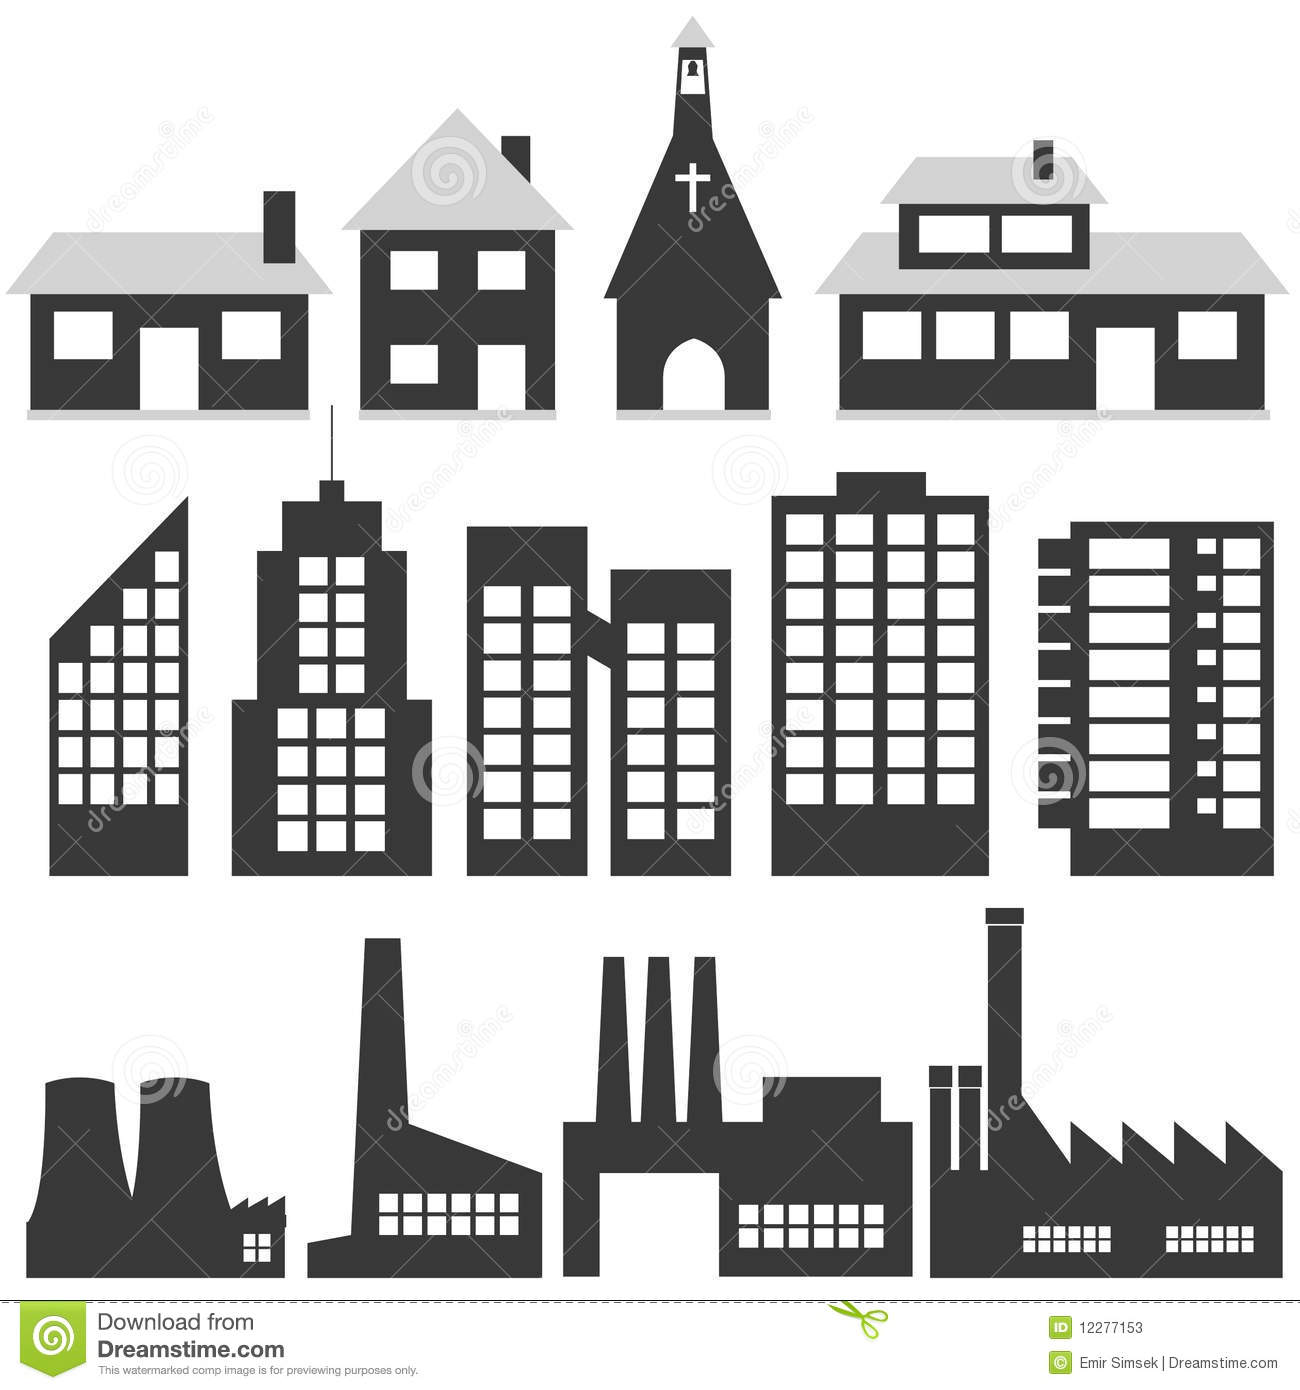 Building Illustrations Stock Photos - Image: 12277153